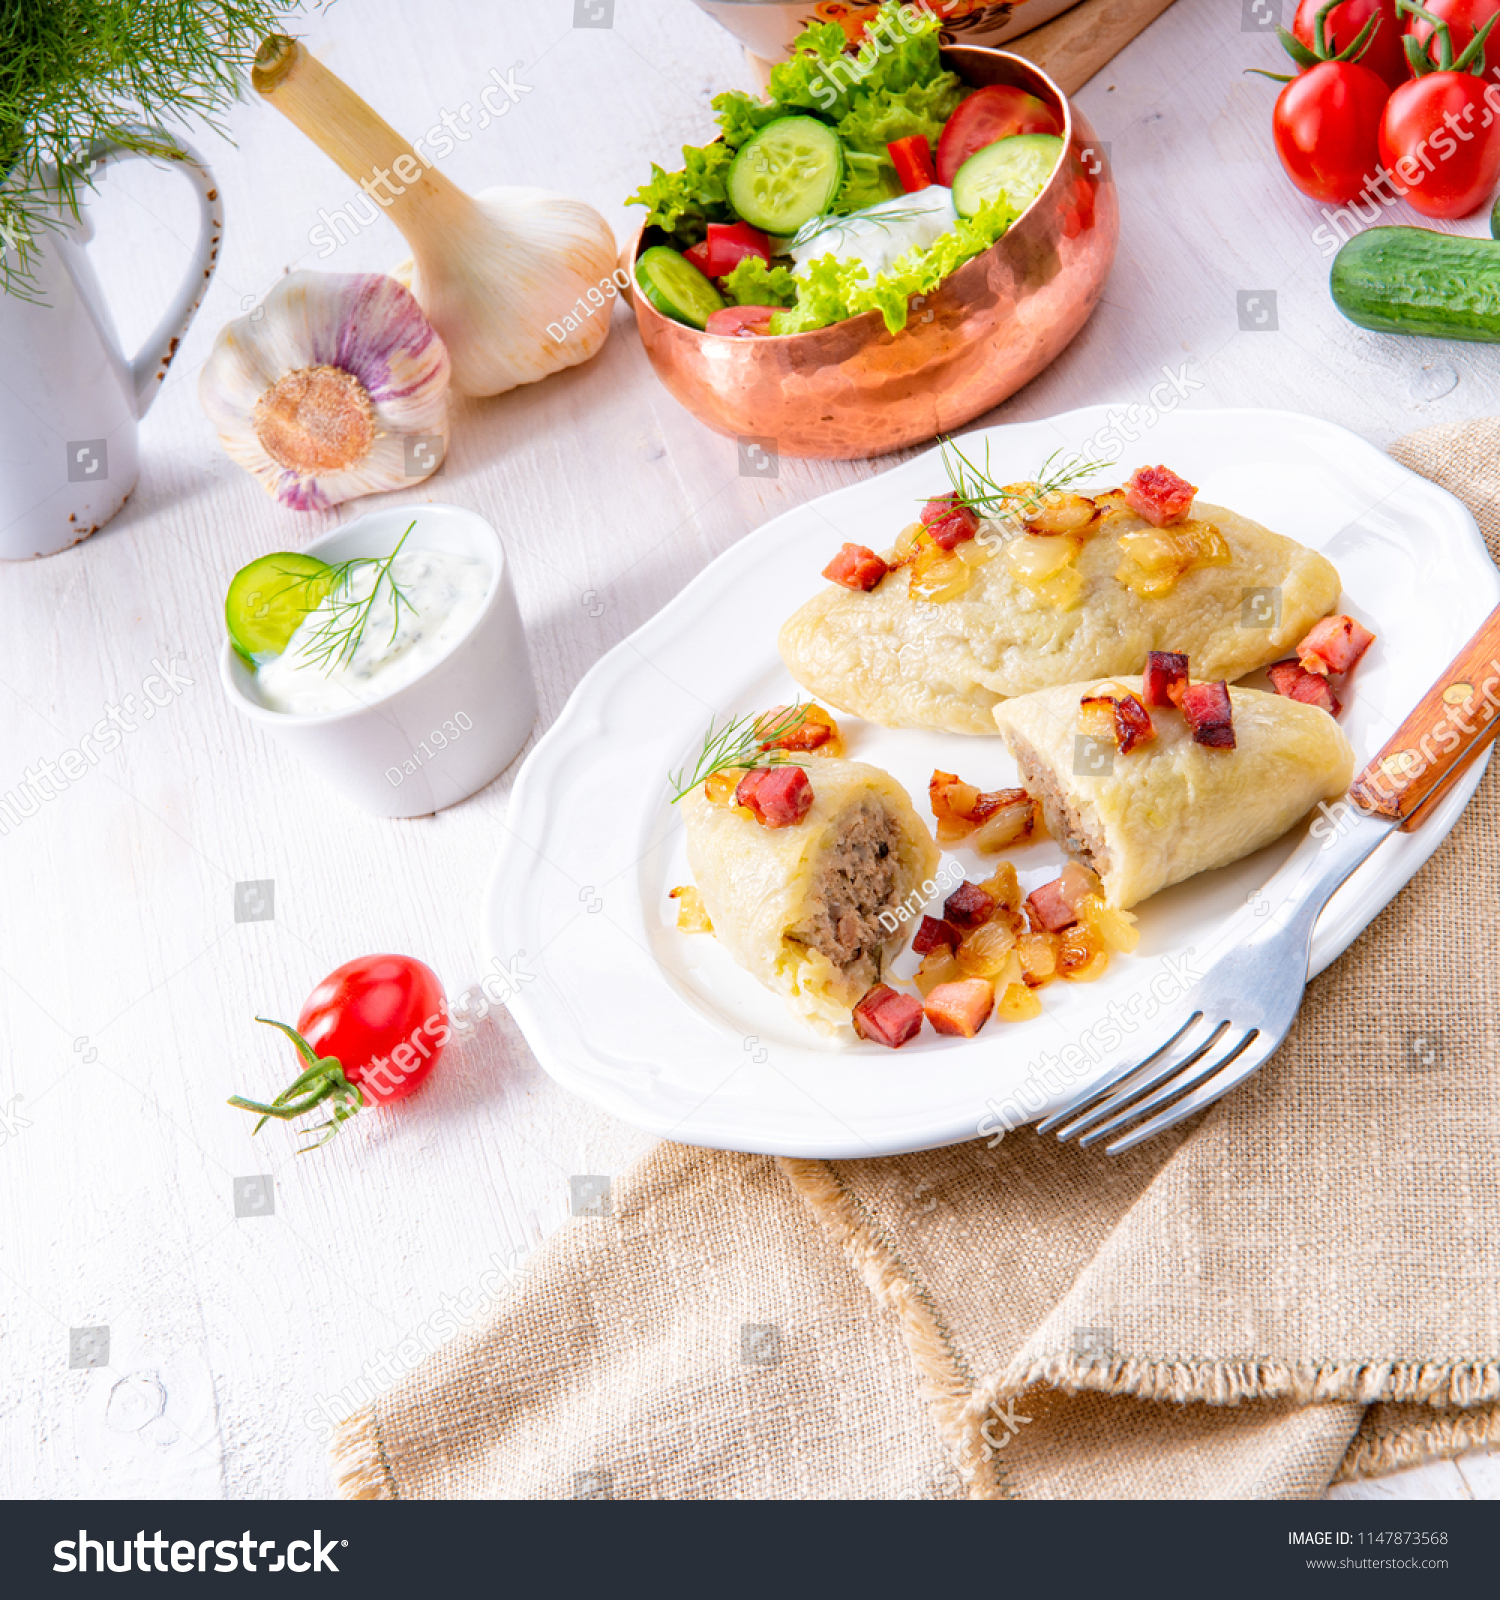 Litauische Küche Zeppelin Rustic Cepelinai Specialty Lithuanian Polish Cuisine Stock Photo